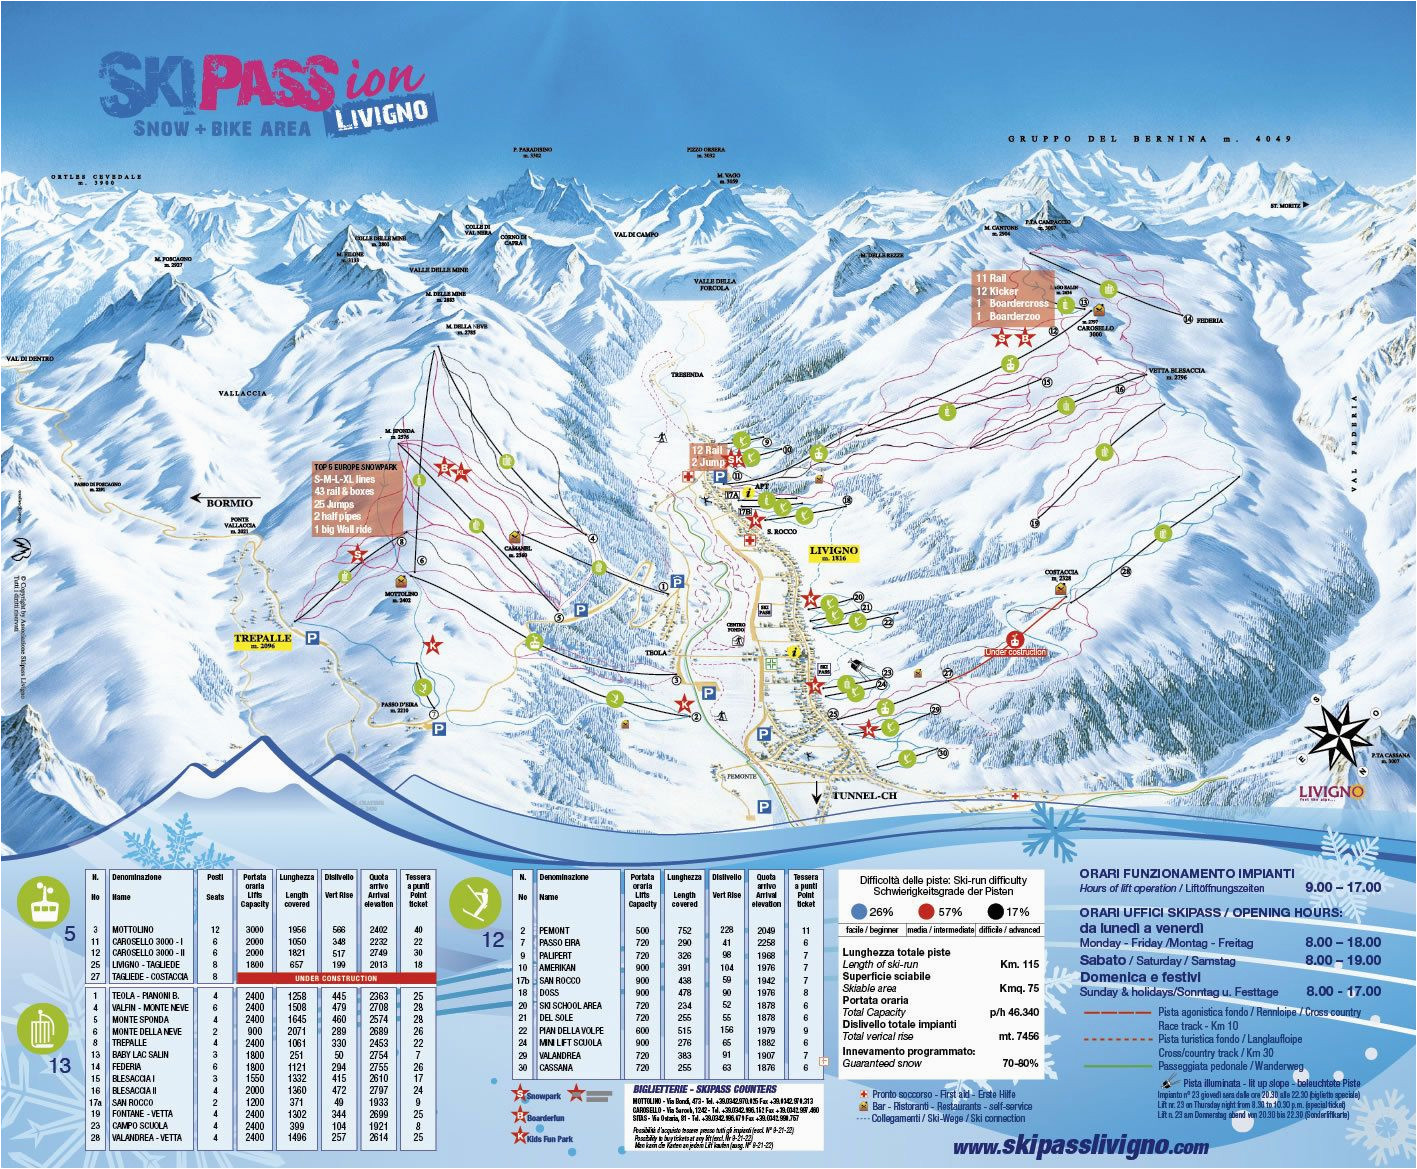 skimap pictures skimap images skimap on pixiview com